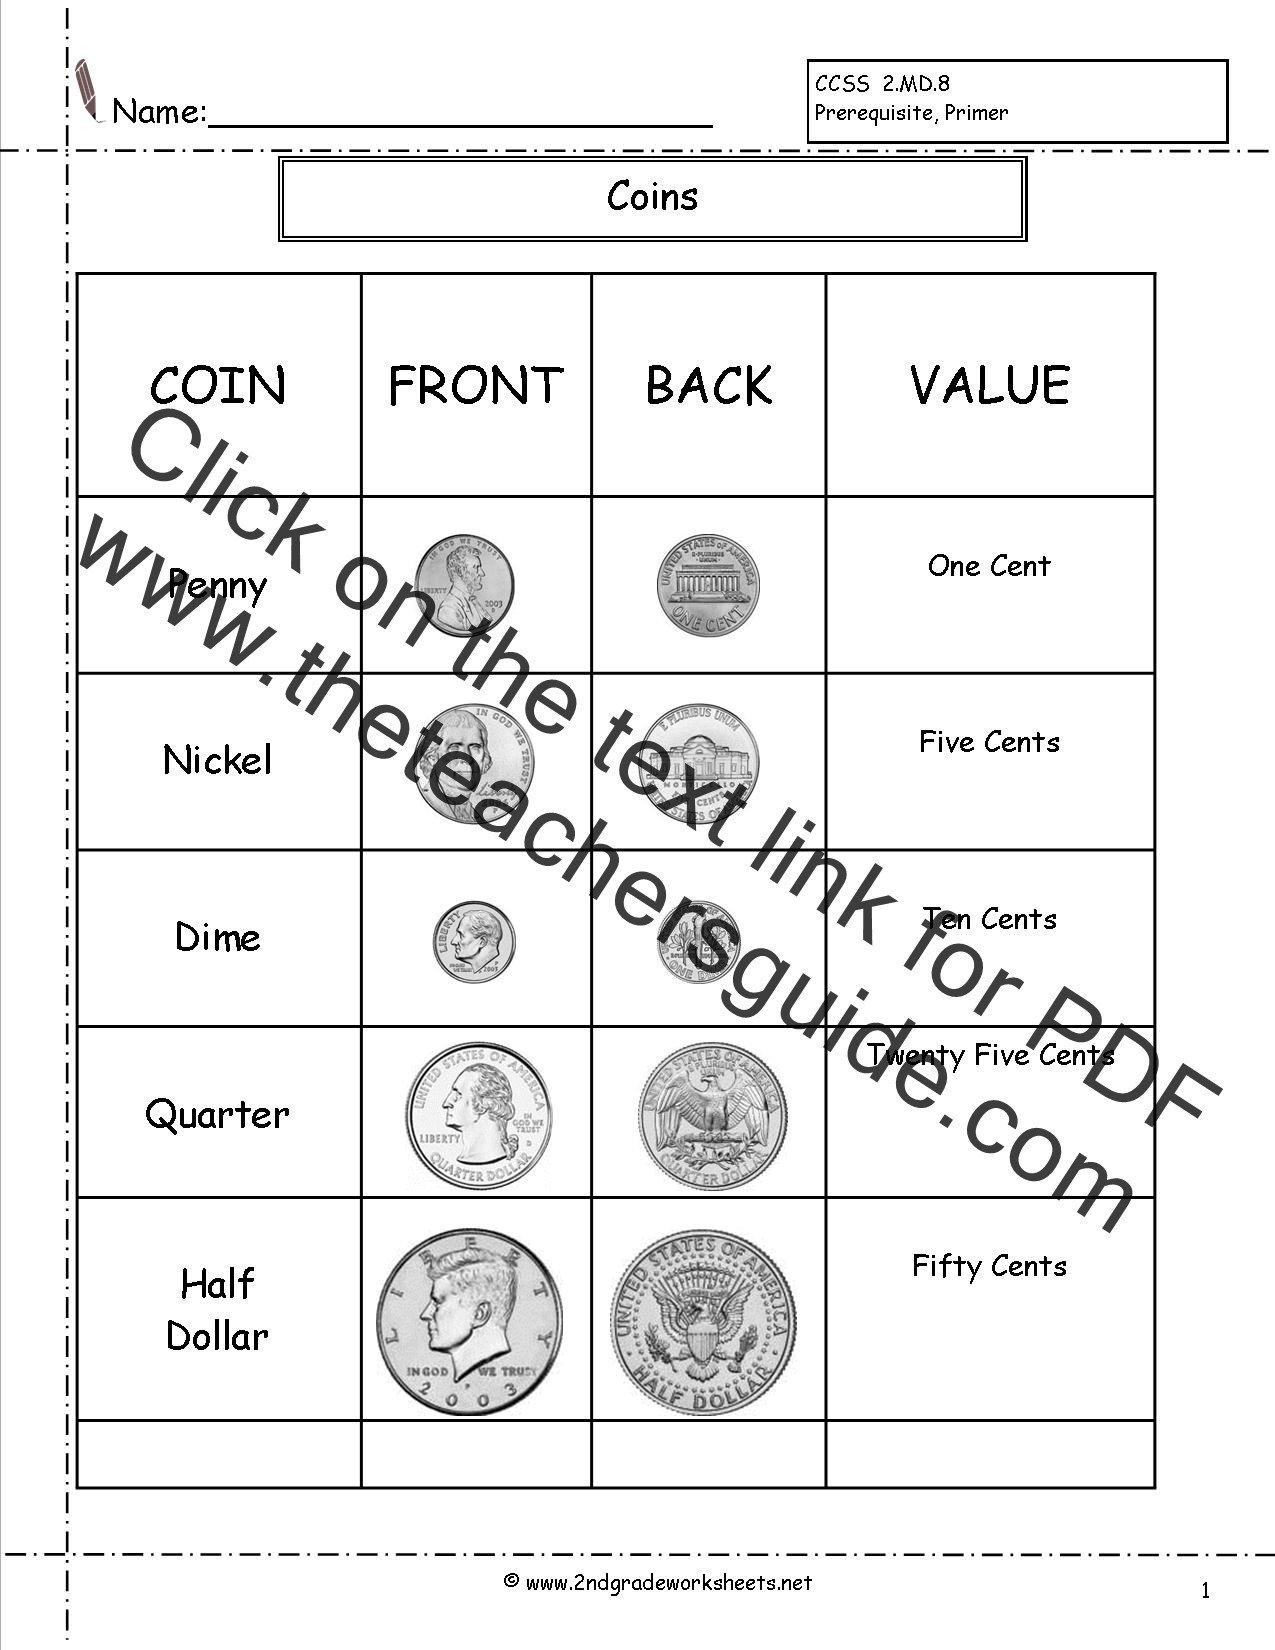 Free Making Change Worksheets Counting Coins and Money Worksheets and Printouts